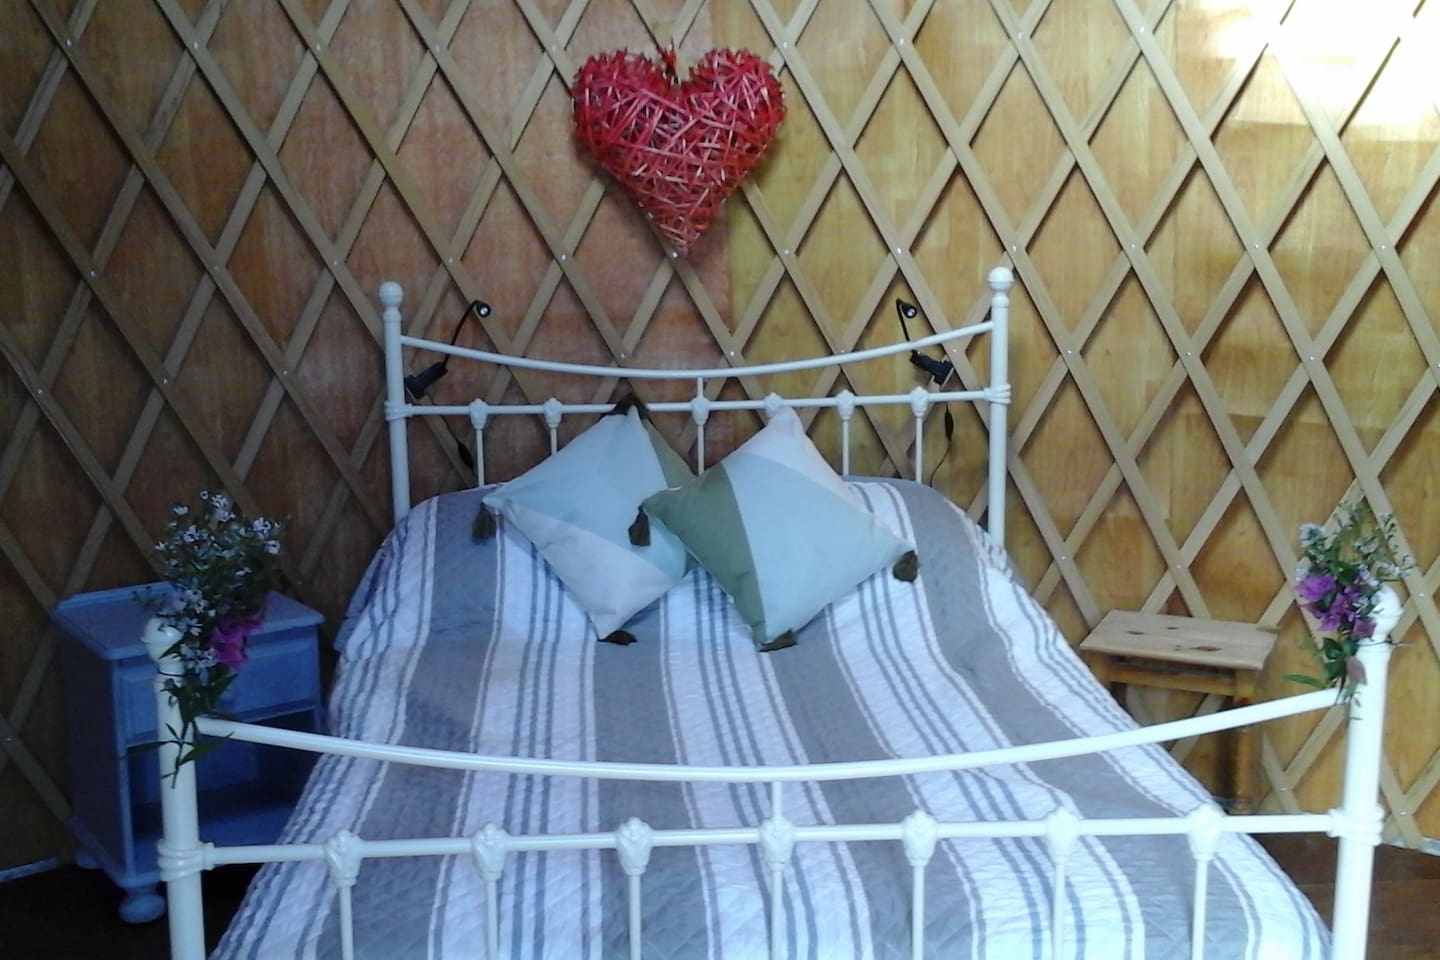 Welcome to Yippee Yurts  this is your comfortable bed in Pear Tree Yurt.